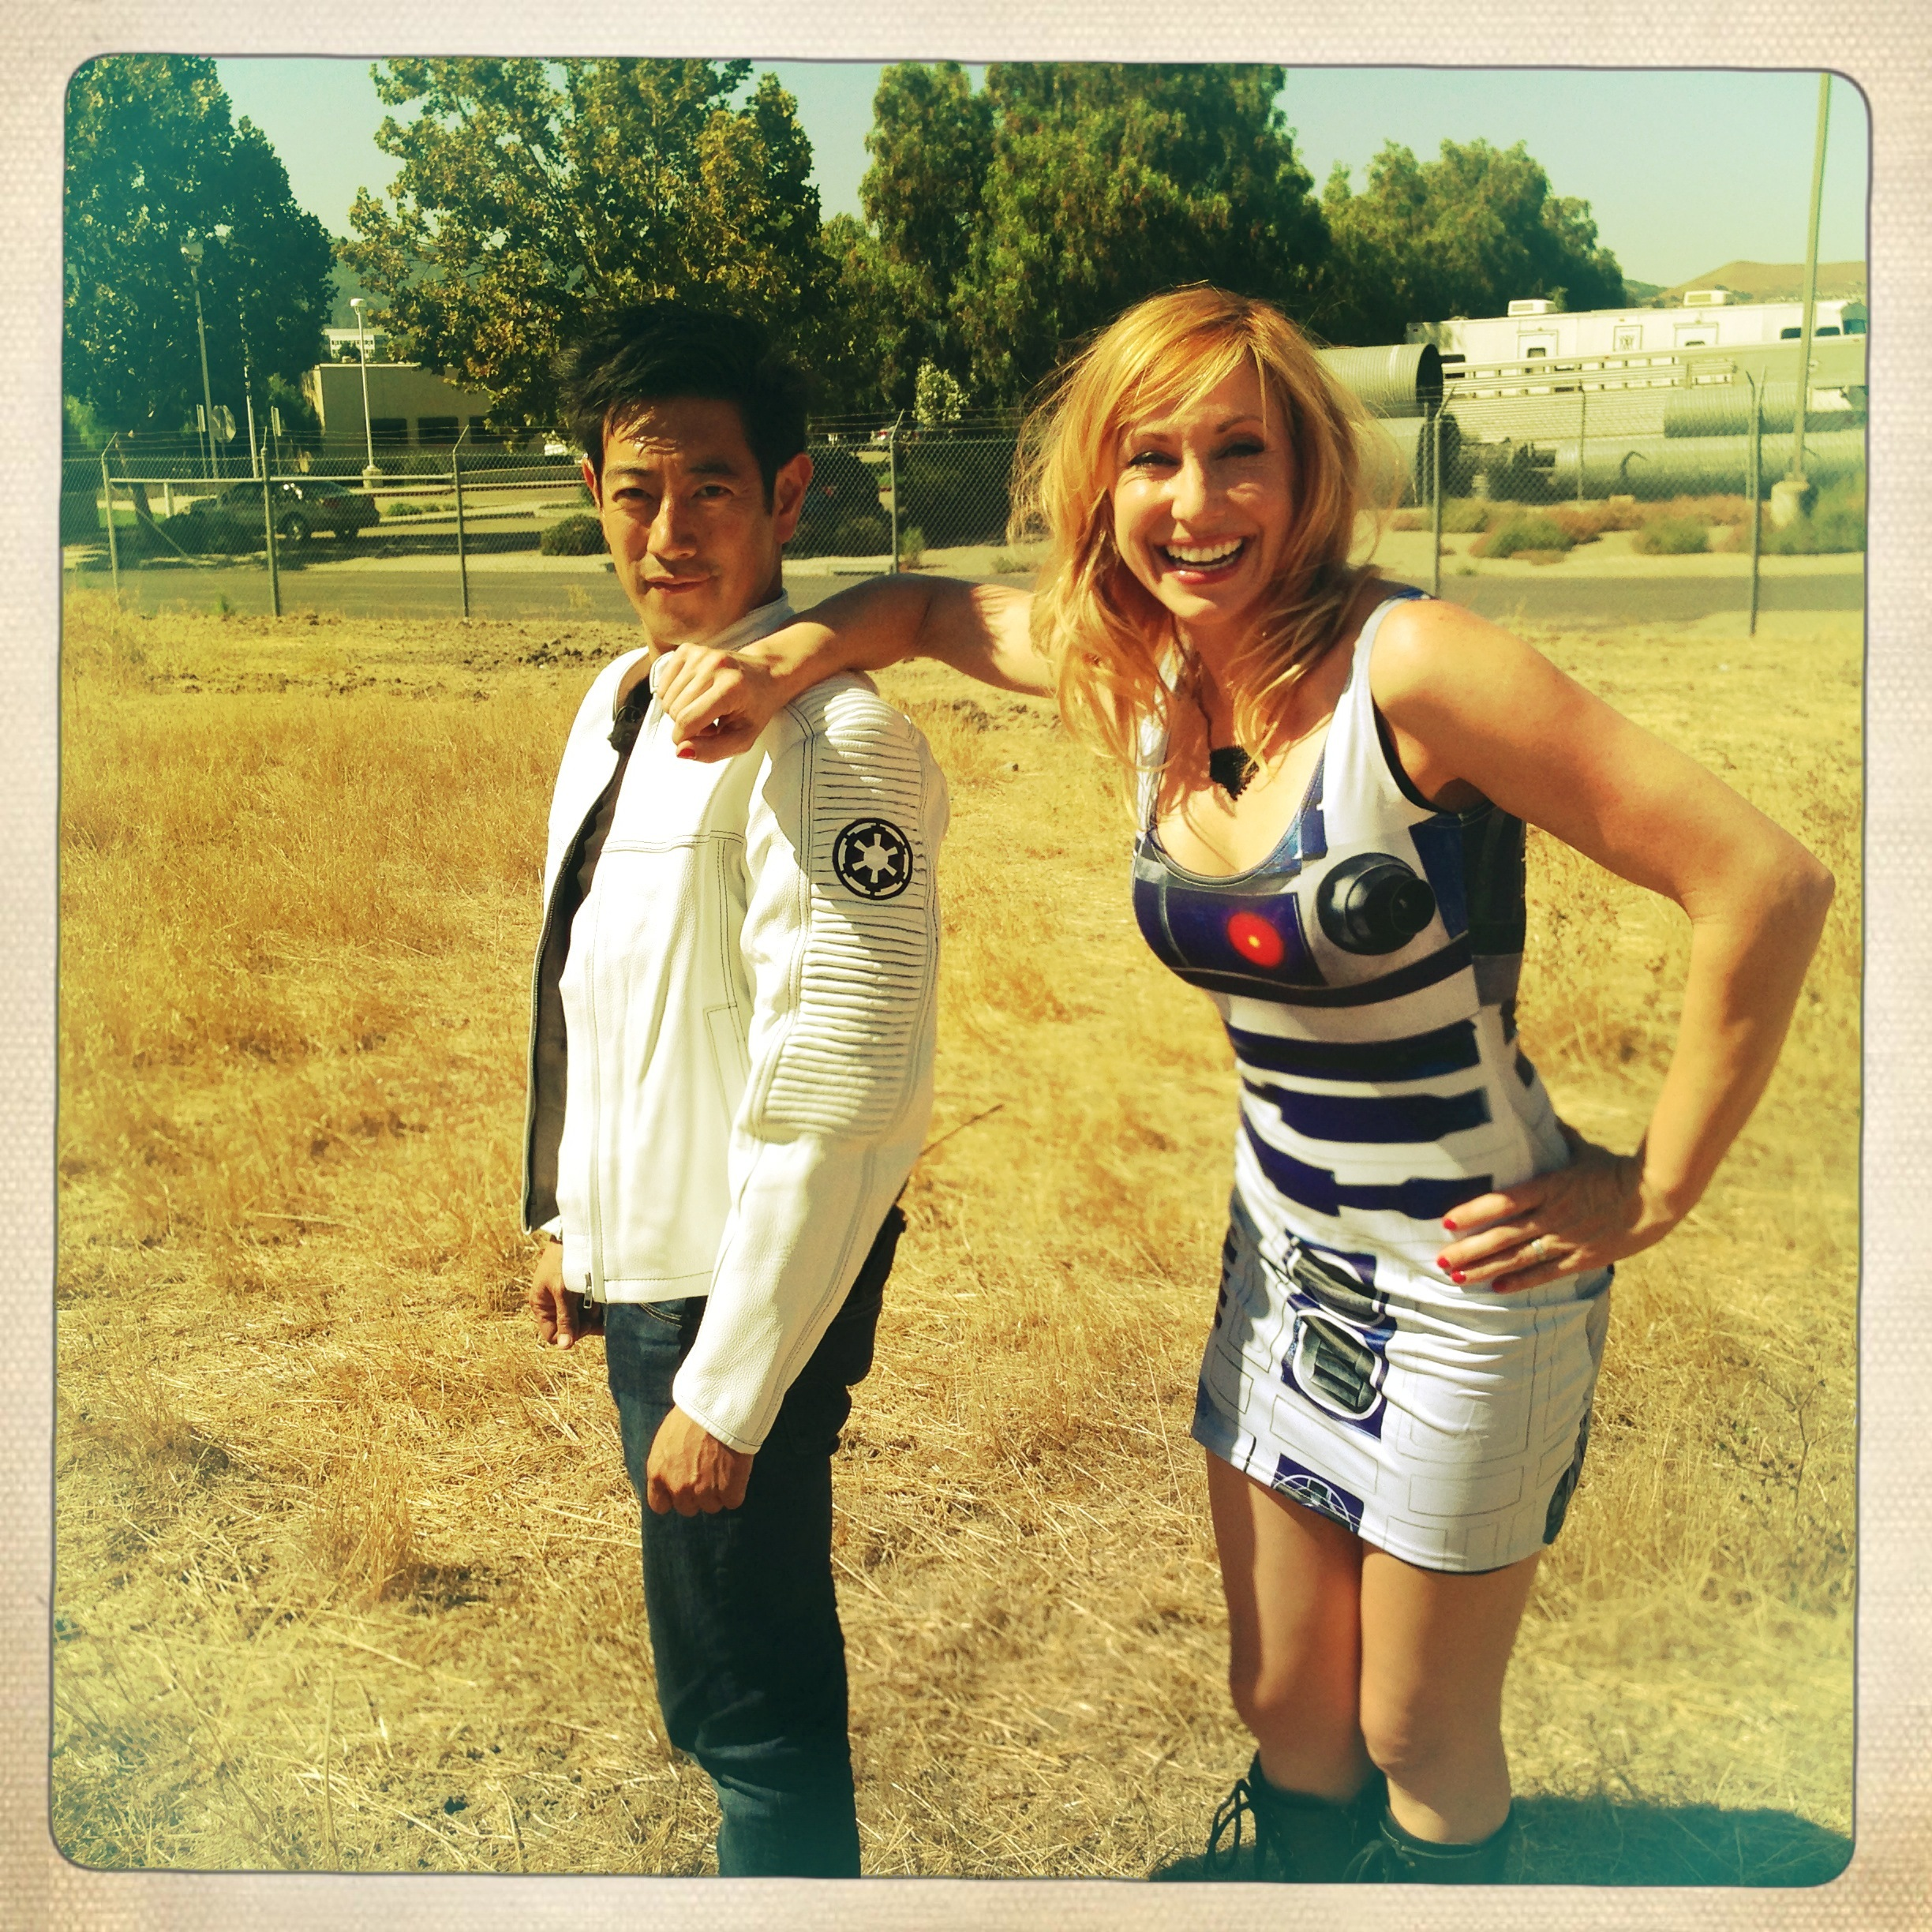 """Grant Imahara and Kari Byron show off their """"Star Wars"""" threads in this candid behind-the-scenes shot from the """"MythBusters"""" set."""